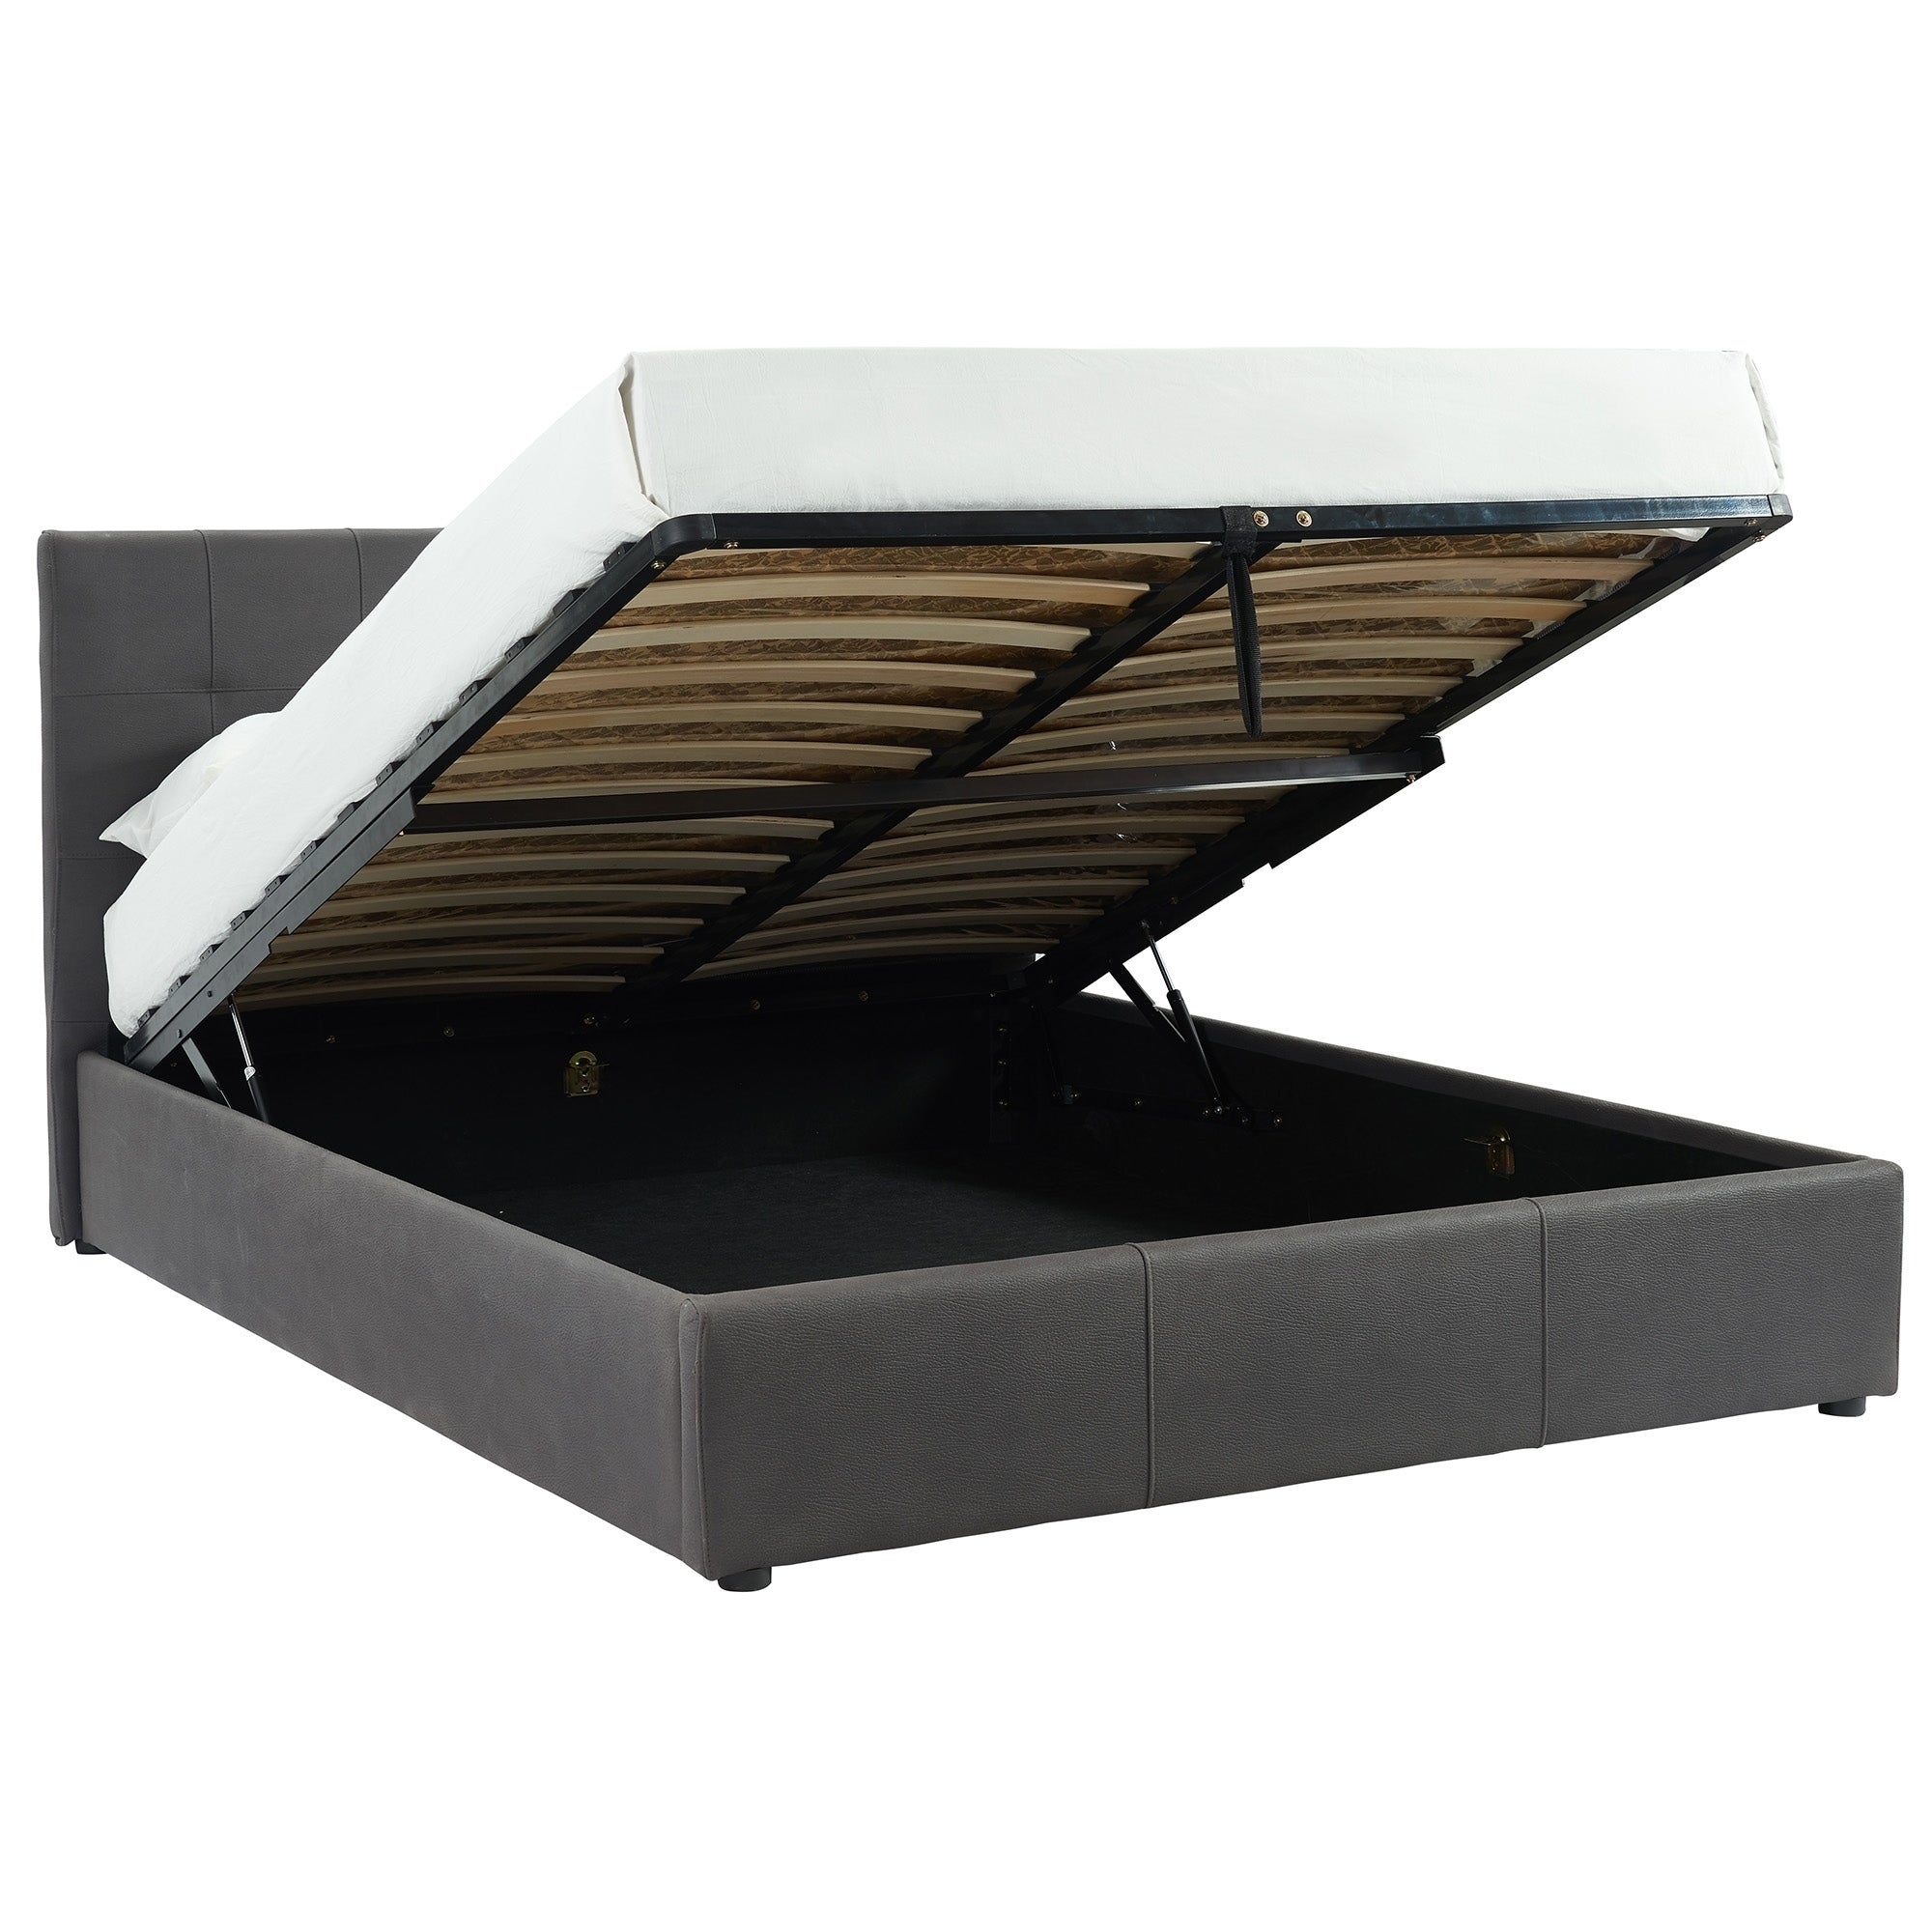 Hydraulic Lift Platform Storage Bed